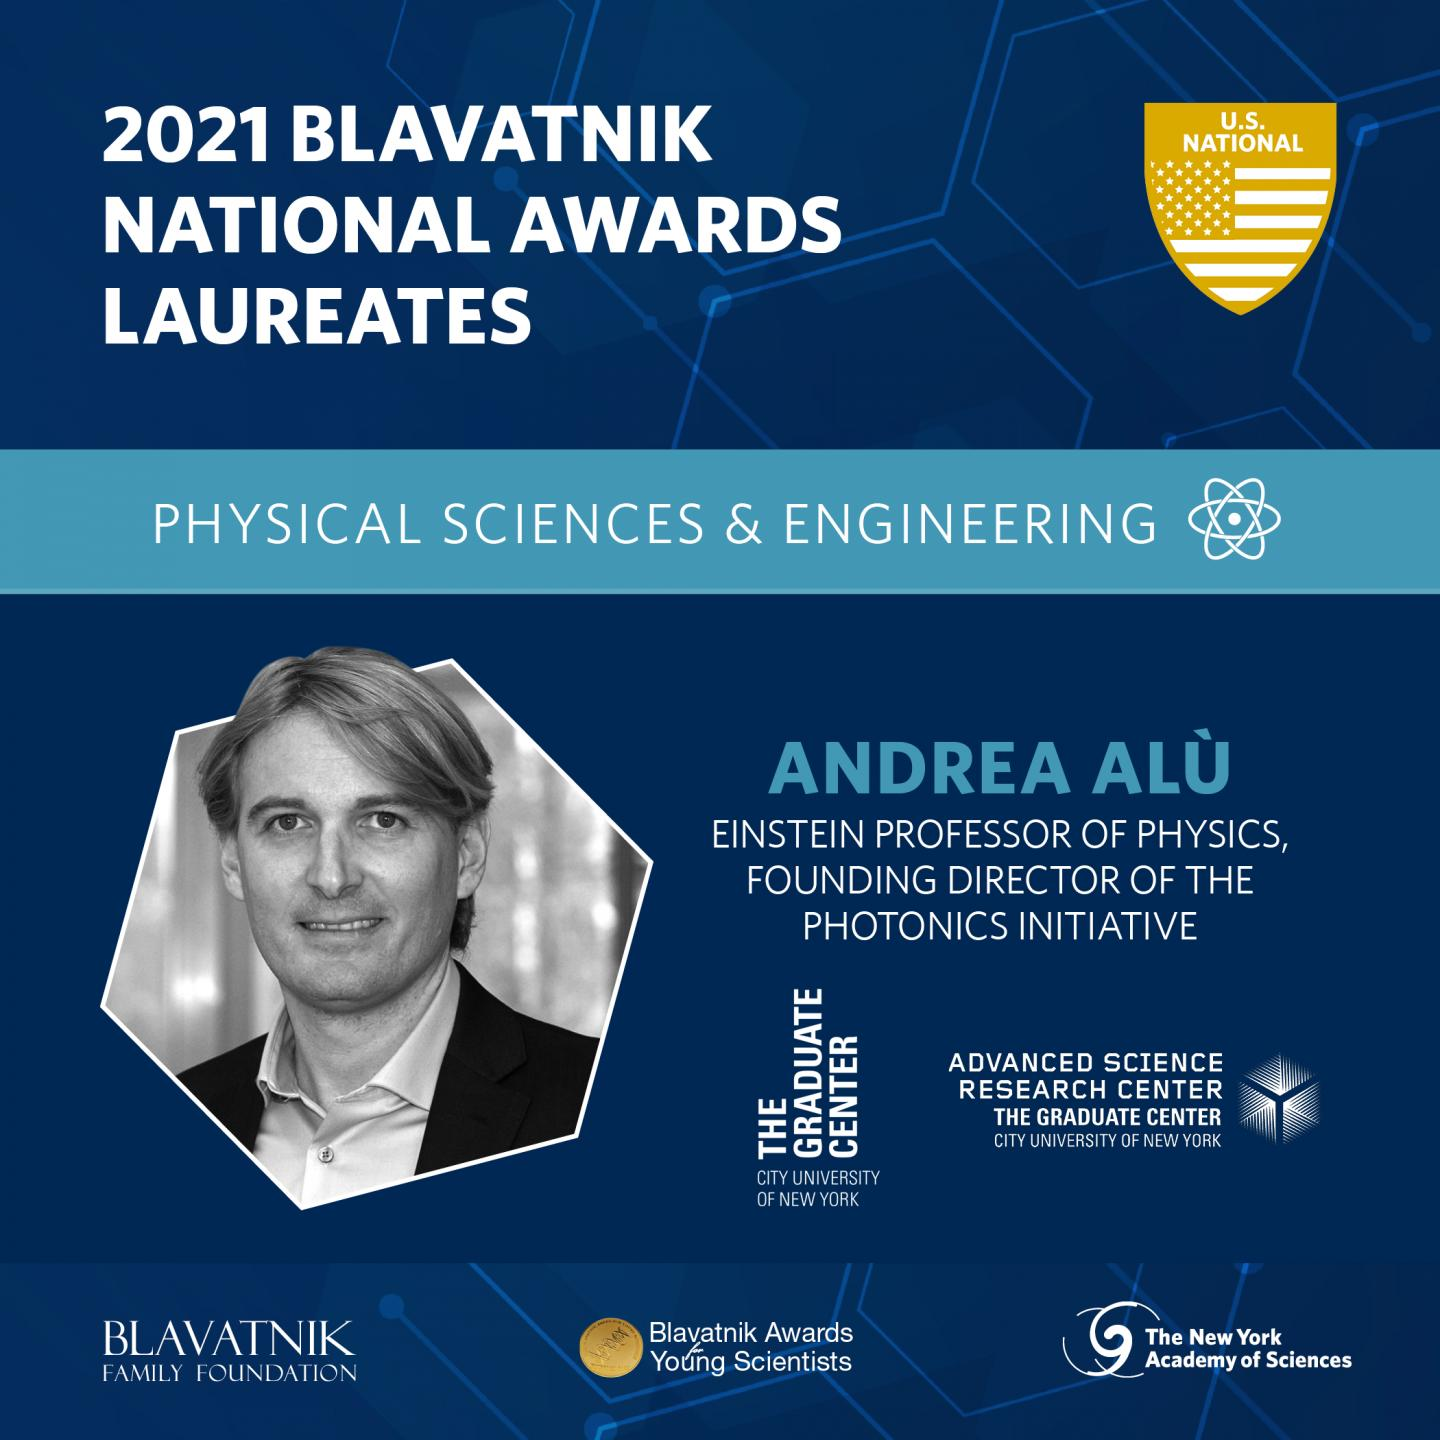 Andrea Alù is the 2021 recipient of the Blavatnik National Award for work in the Physical Sciences and Engineering